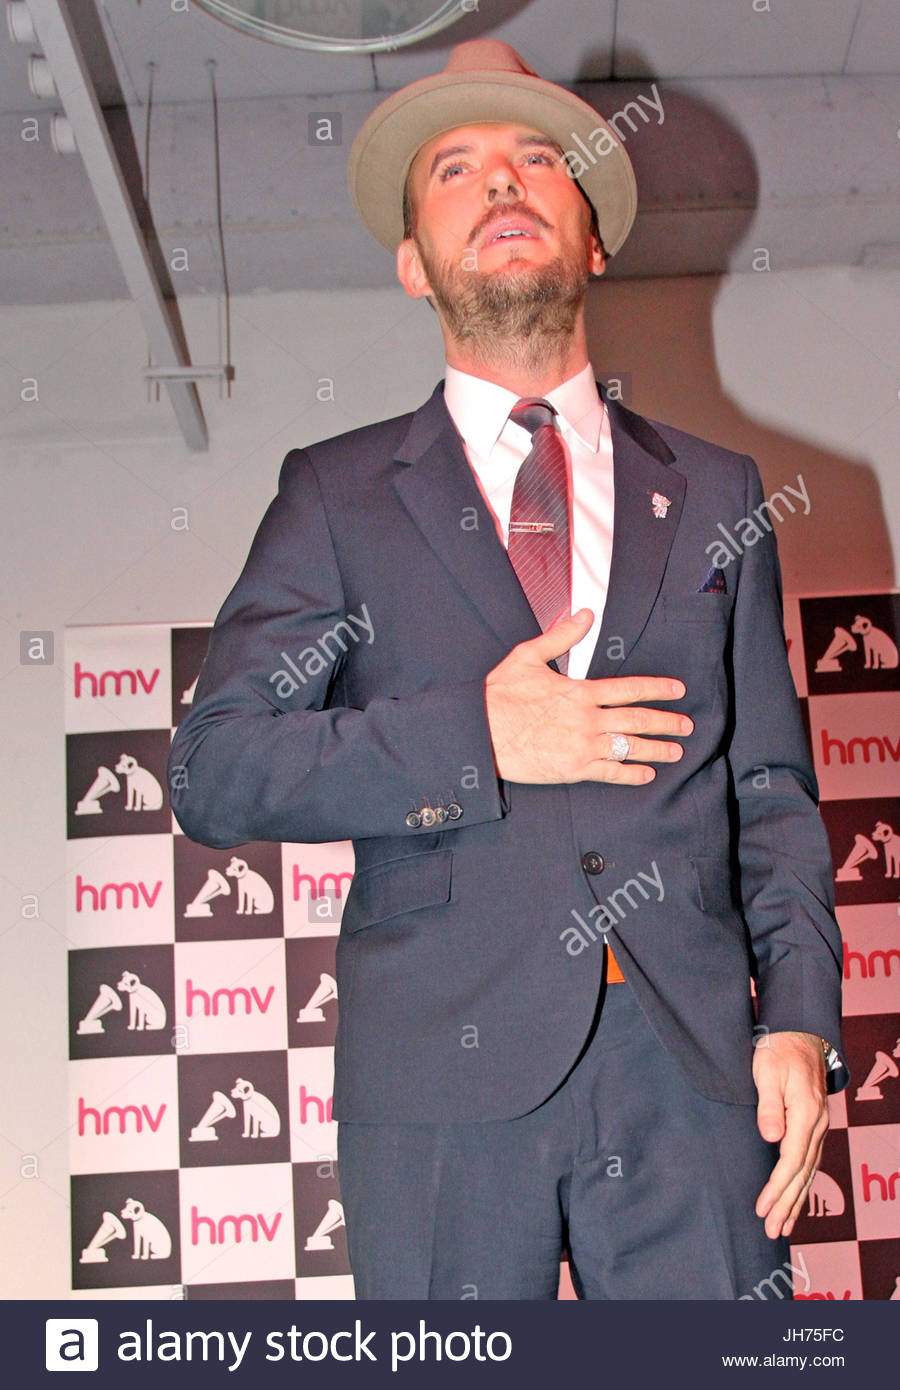 Matt goss mothers brought their daughters to meet matt matthew matt goss mothers brought their daughters to meet matt matthew weston matt goss born 29 september 1968 is an english singer songwriter and musician m4hsunfo